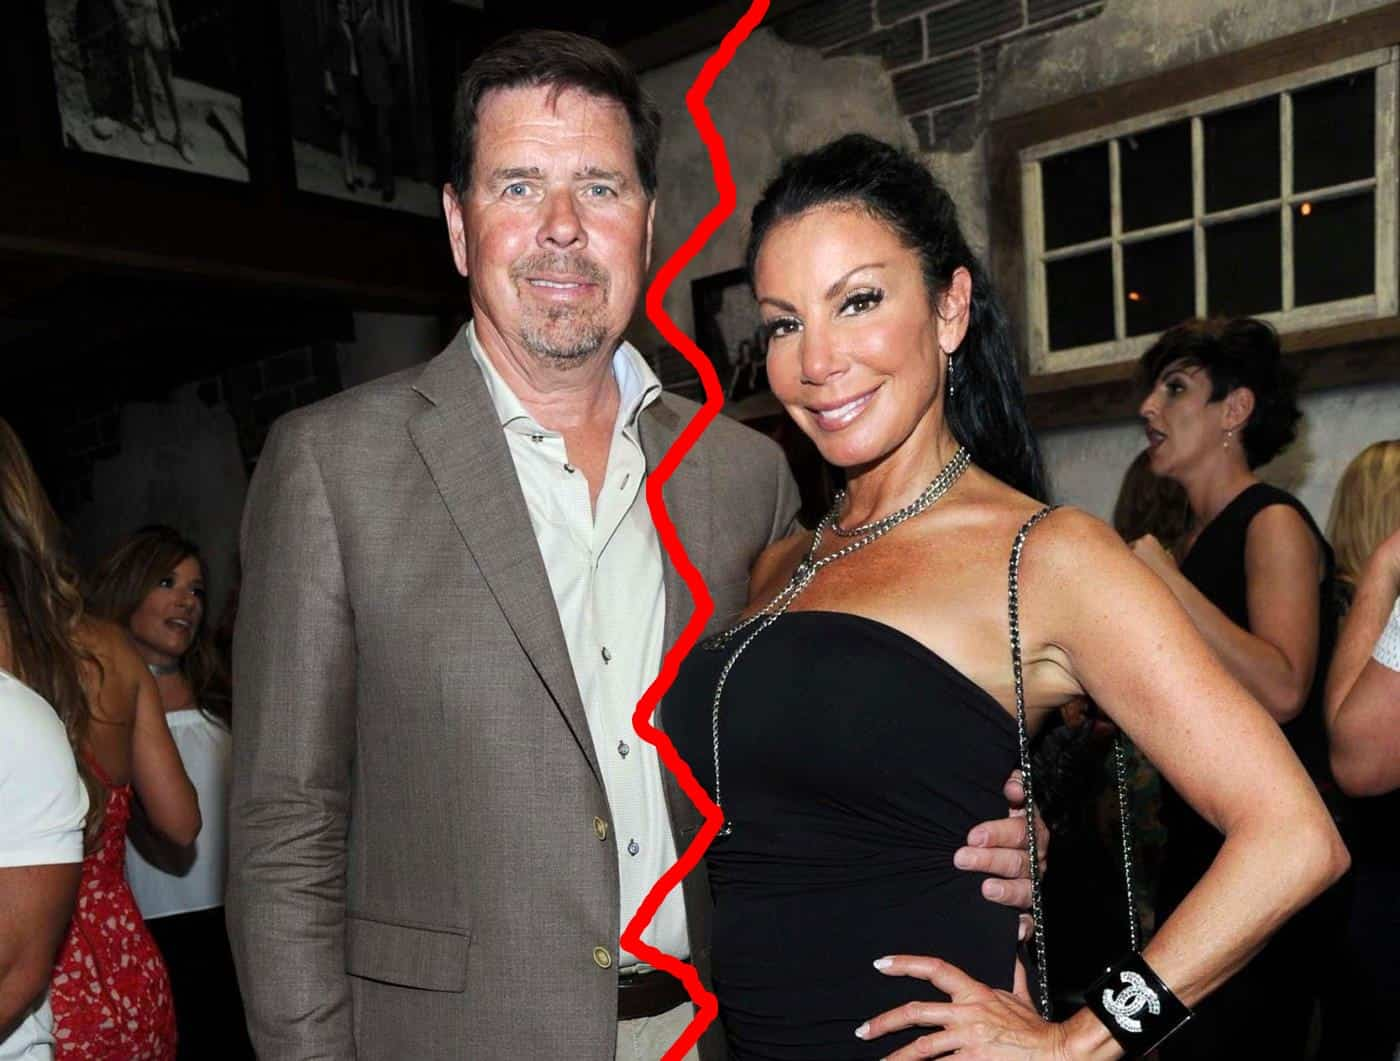 RHONJ Star Danielle Staub Divorce Finalized